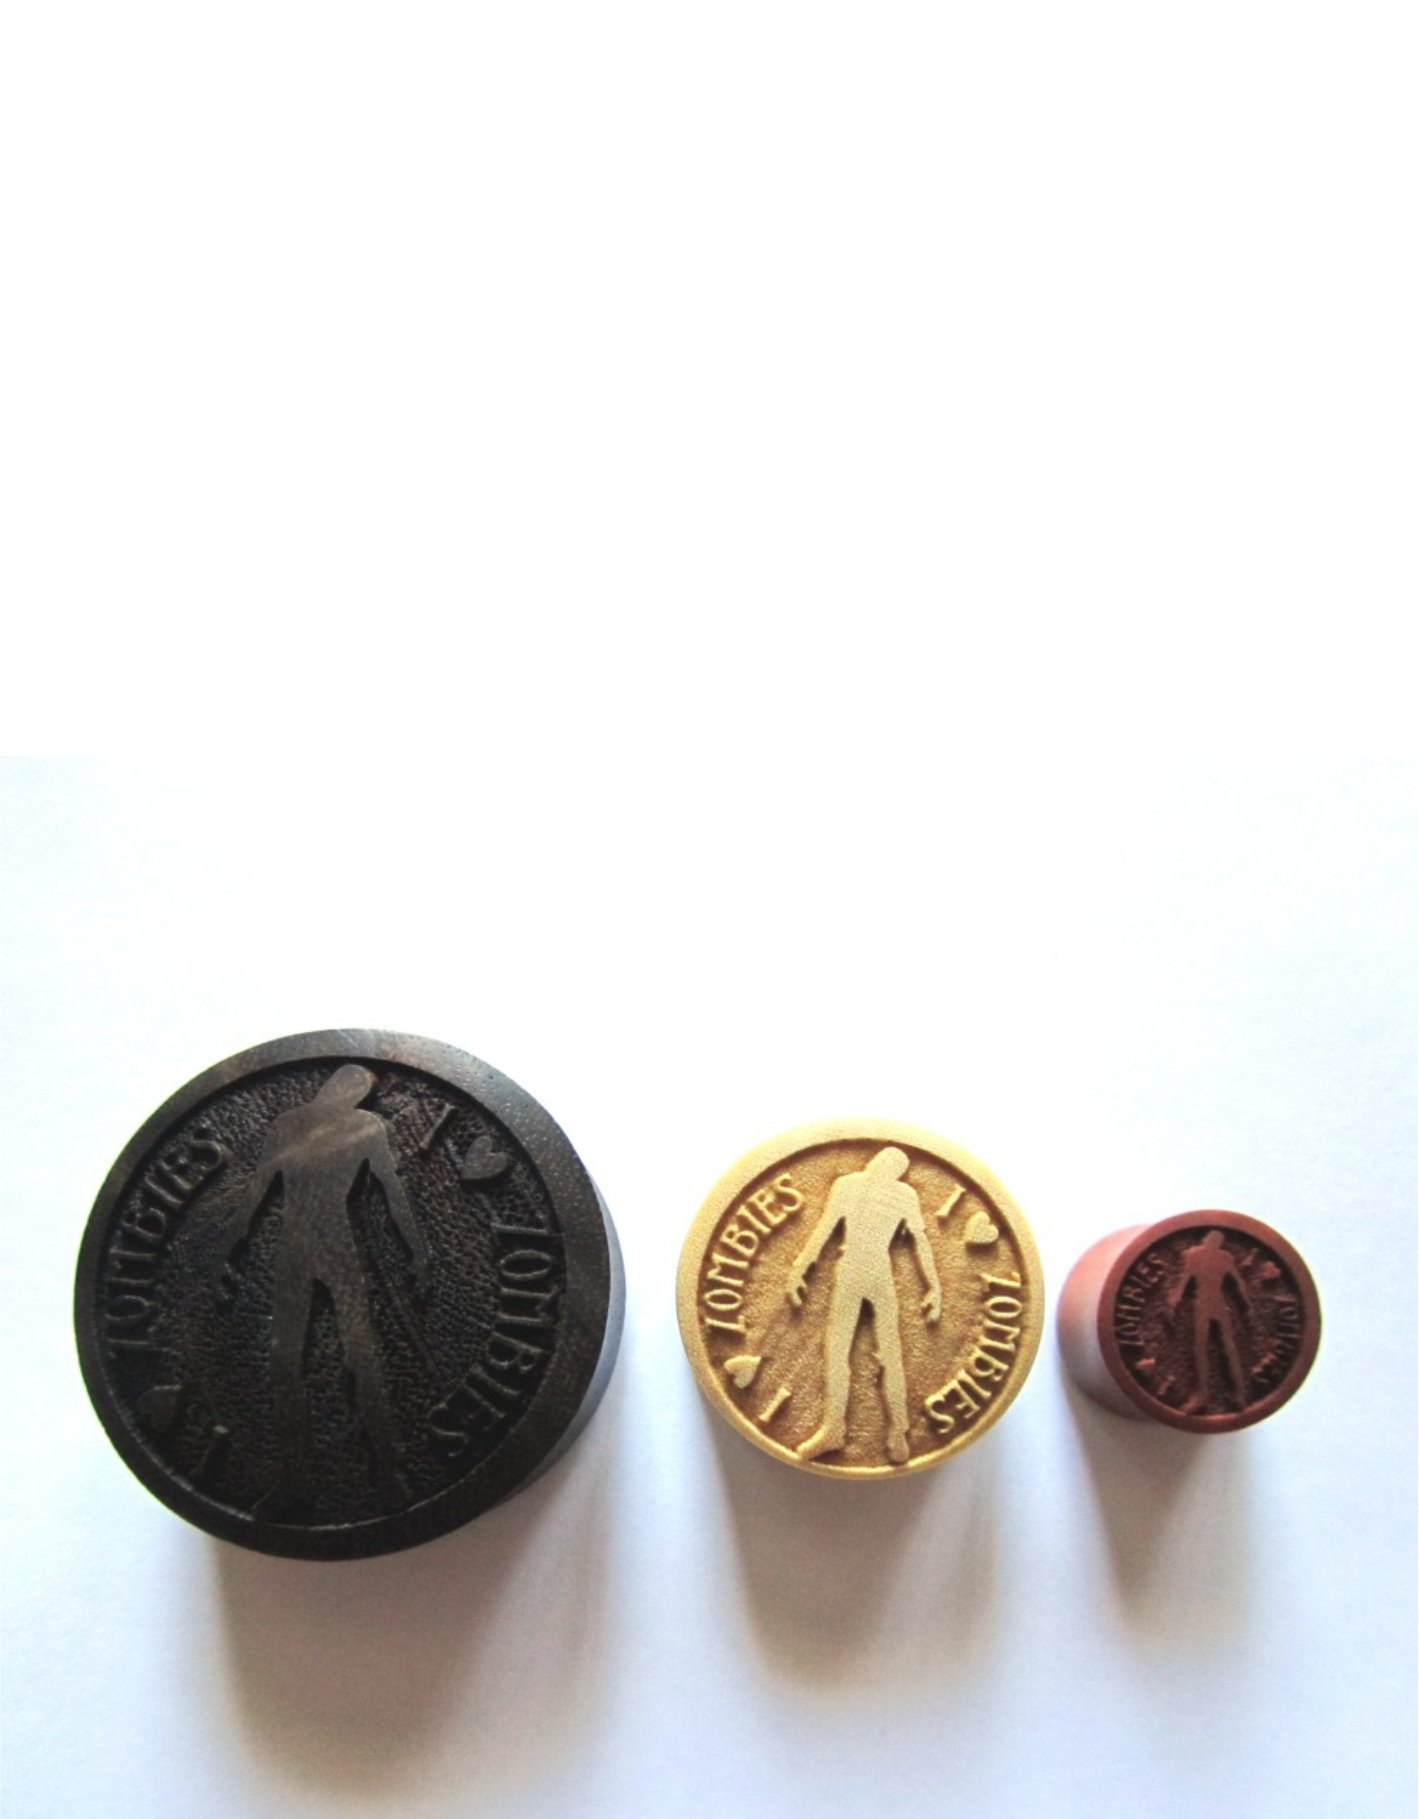 100% Handmade ''I LOVE Zombies'' Organic Wood Plugs - You Choose Color/Type of Wood and Size 7/16'' - 30mm